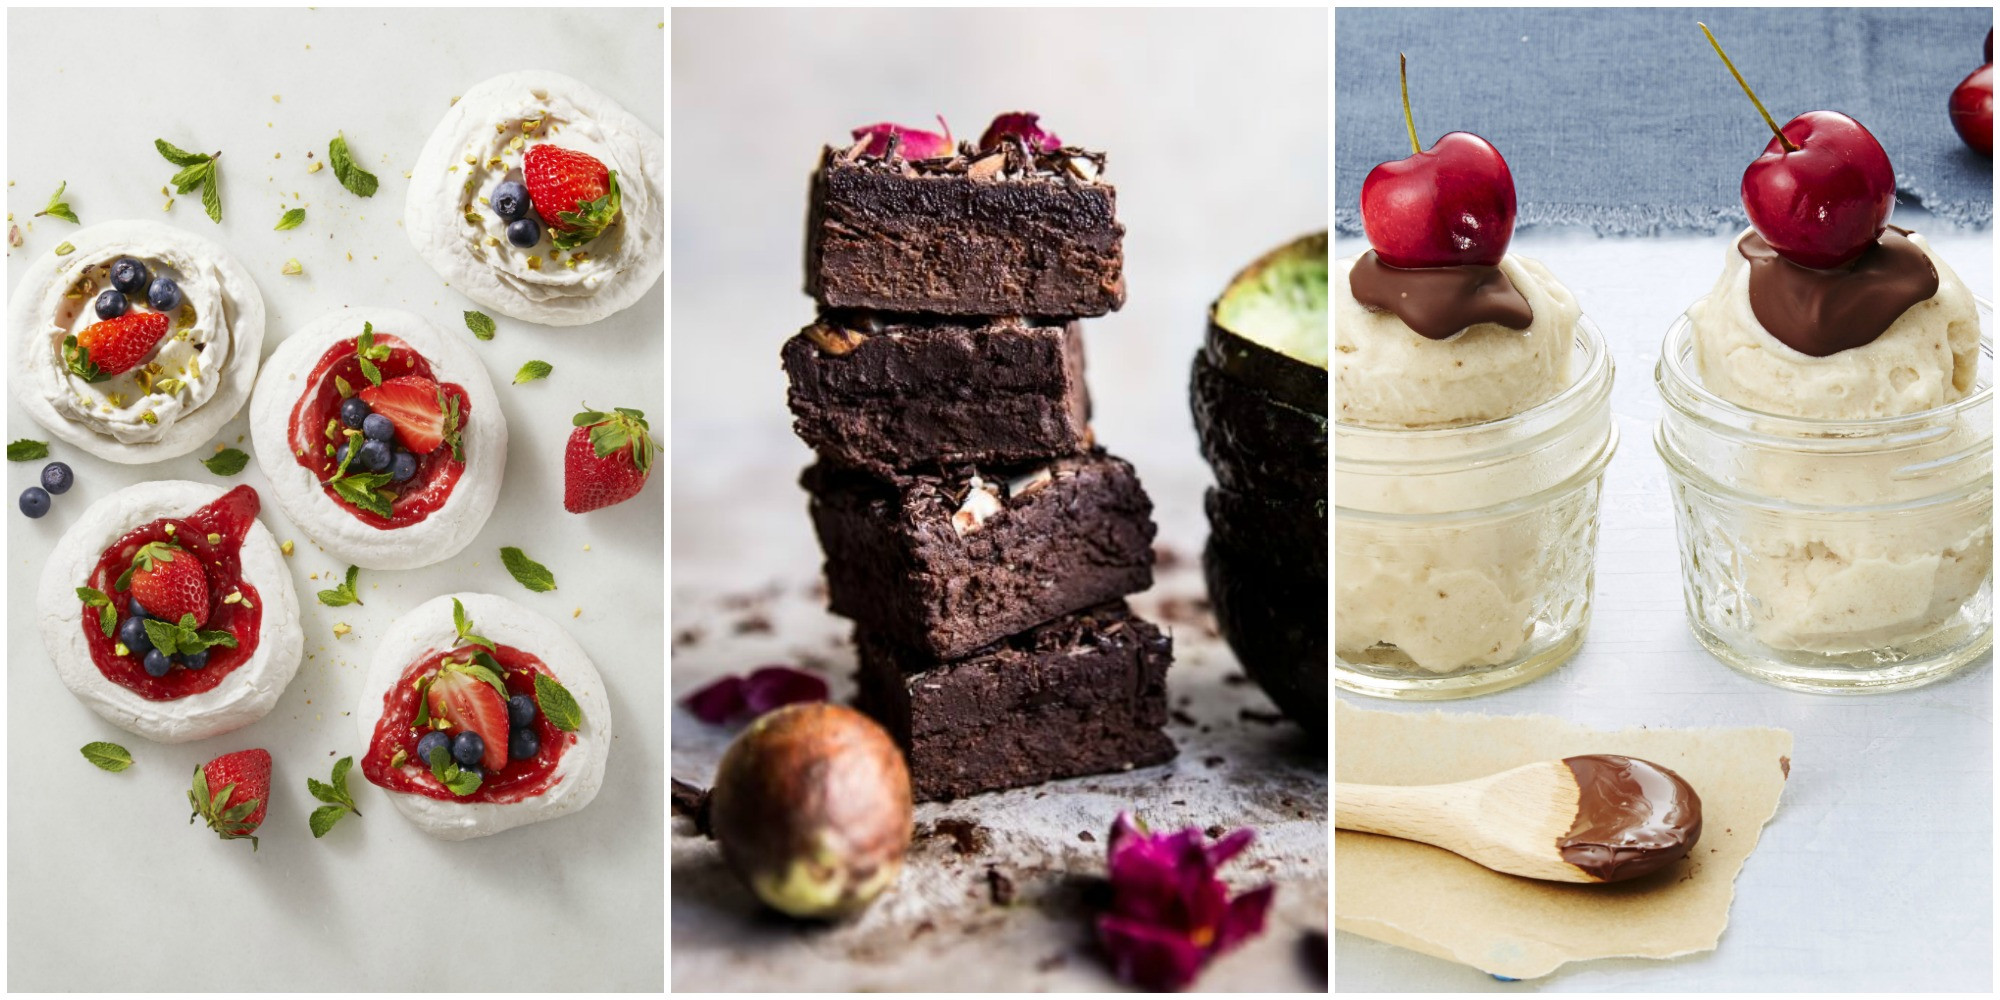 Quick Easy Healthy Desserts  15 Best Healthy Dessert Recipes Easy Ideas for Low